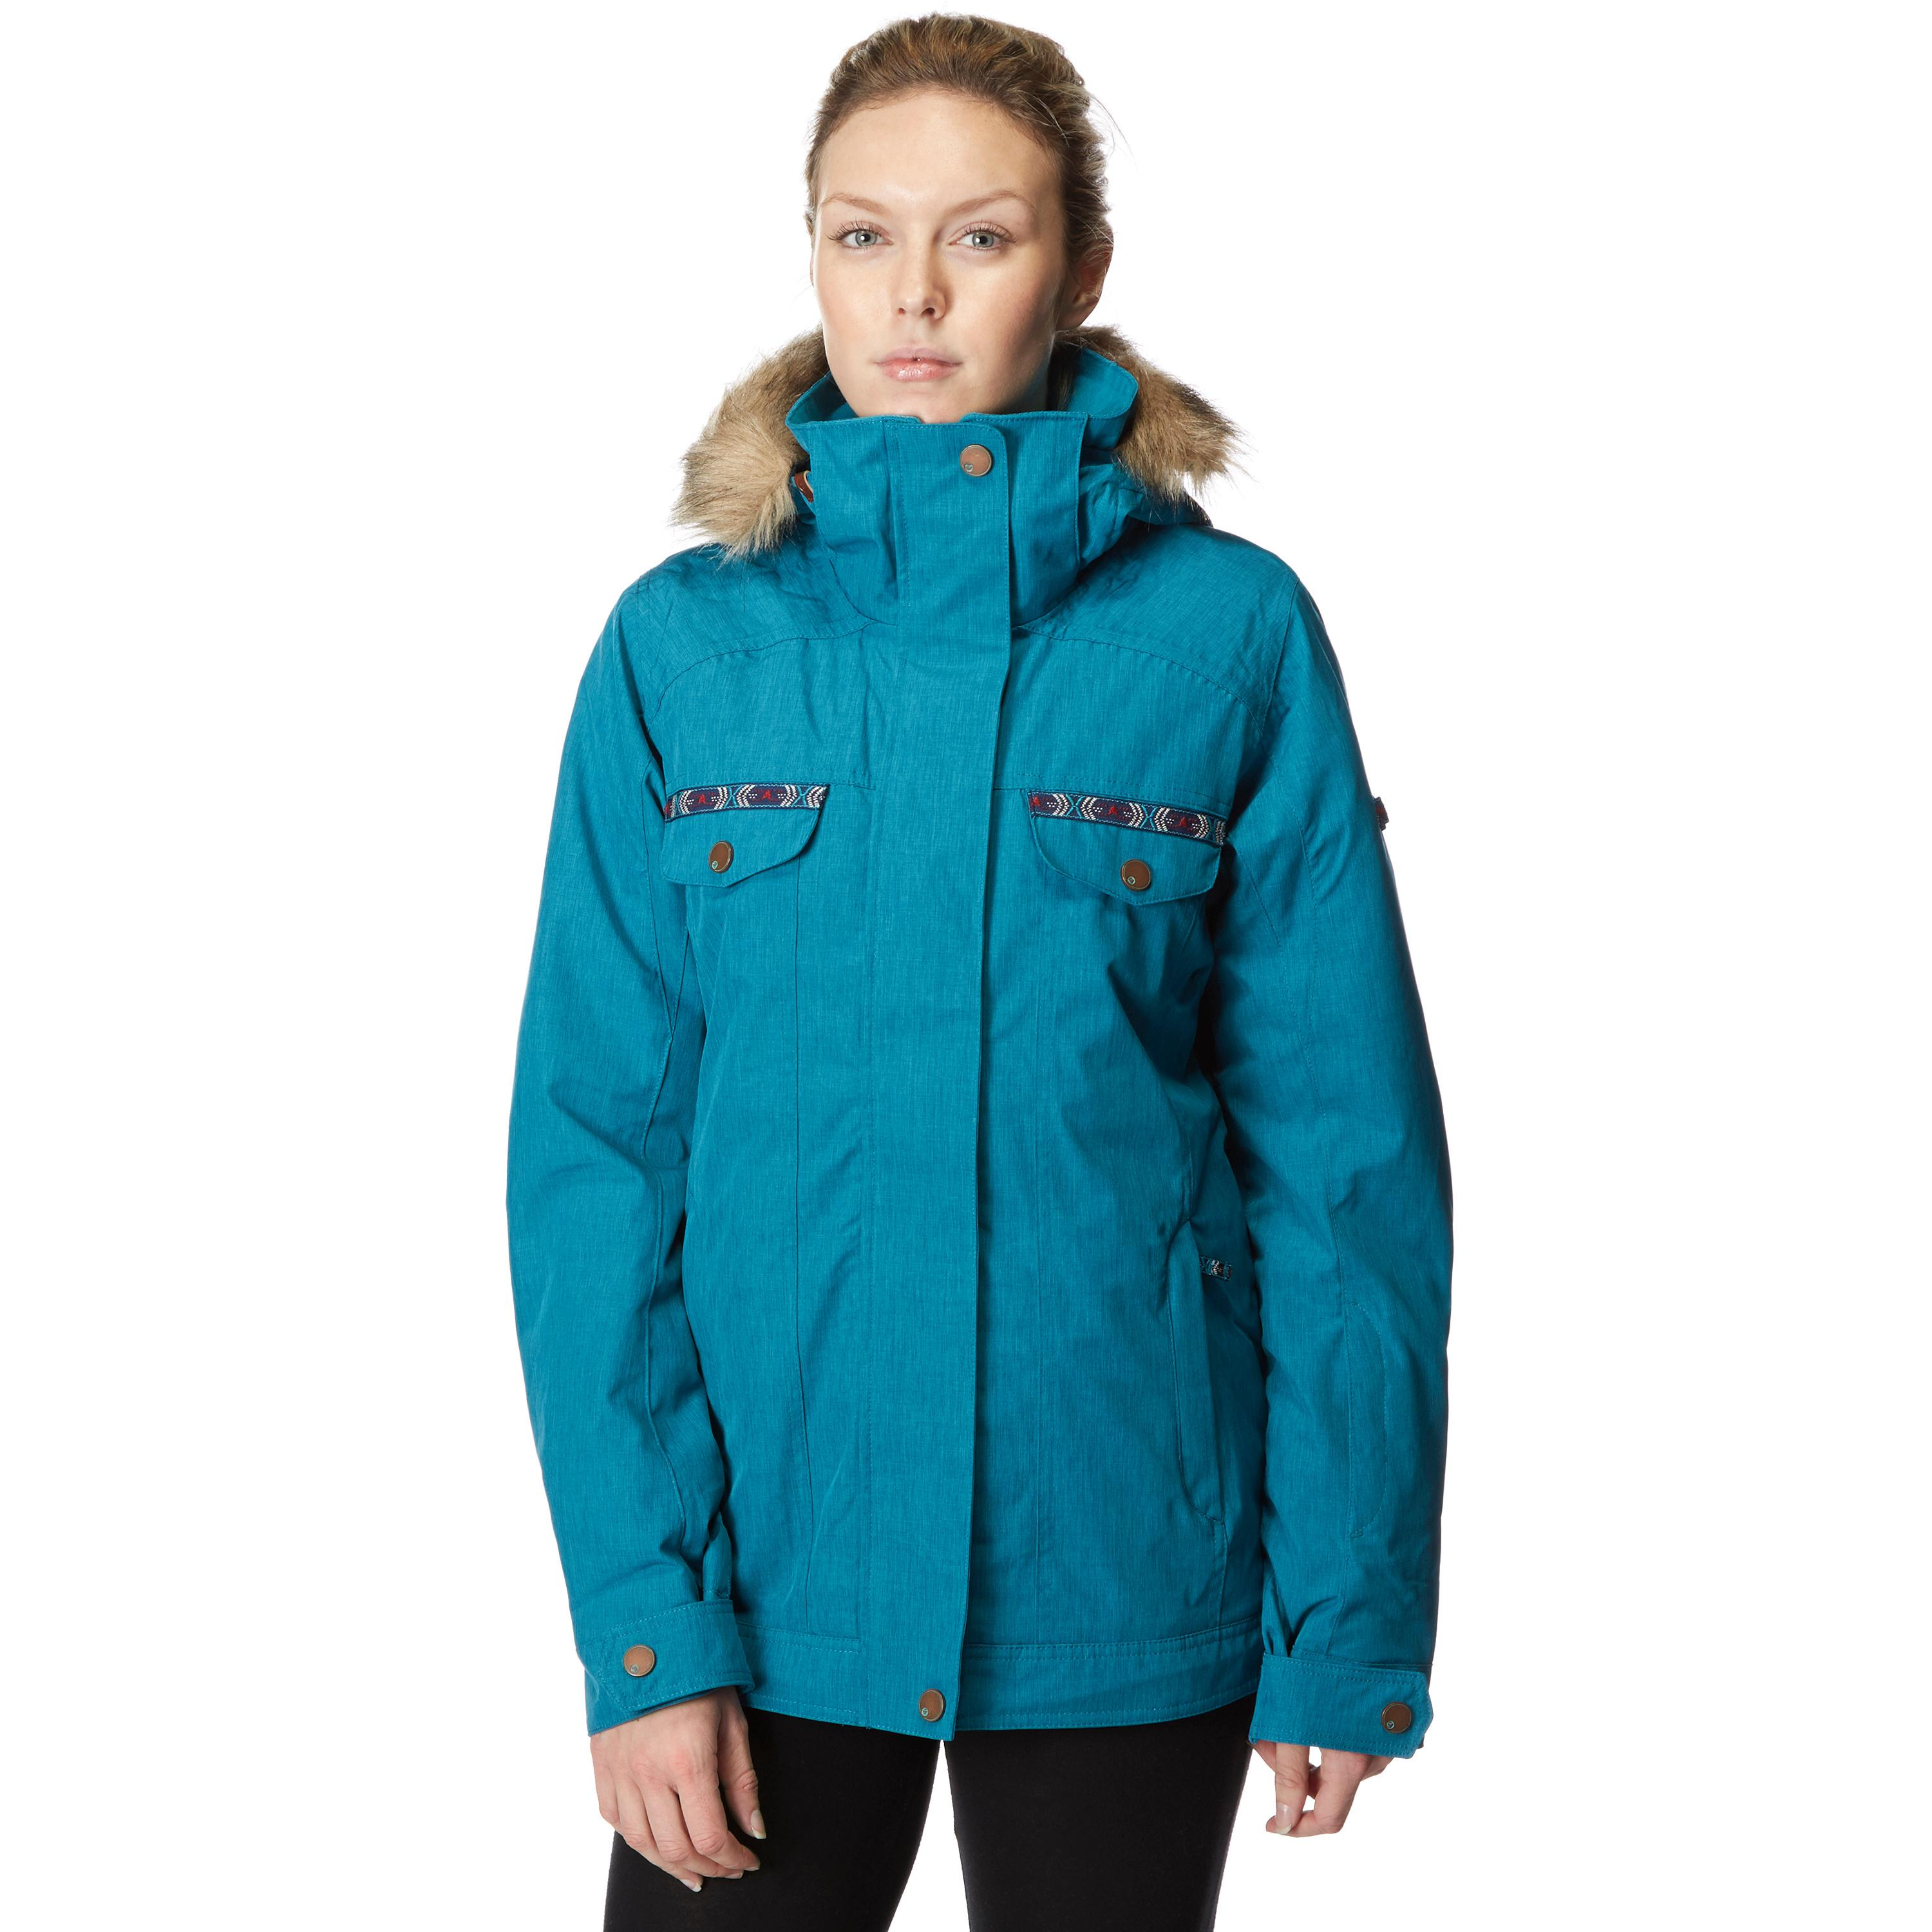 Roxy Women's Misti Snowboard Jacket, Blue